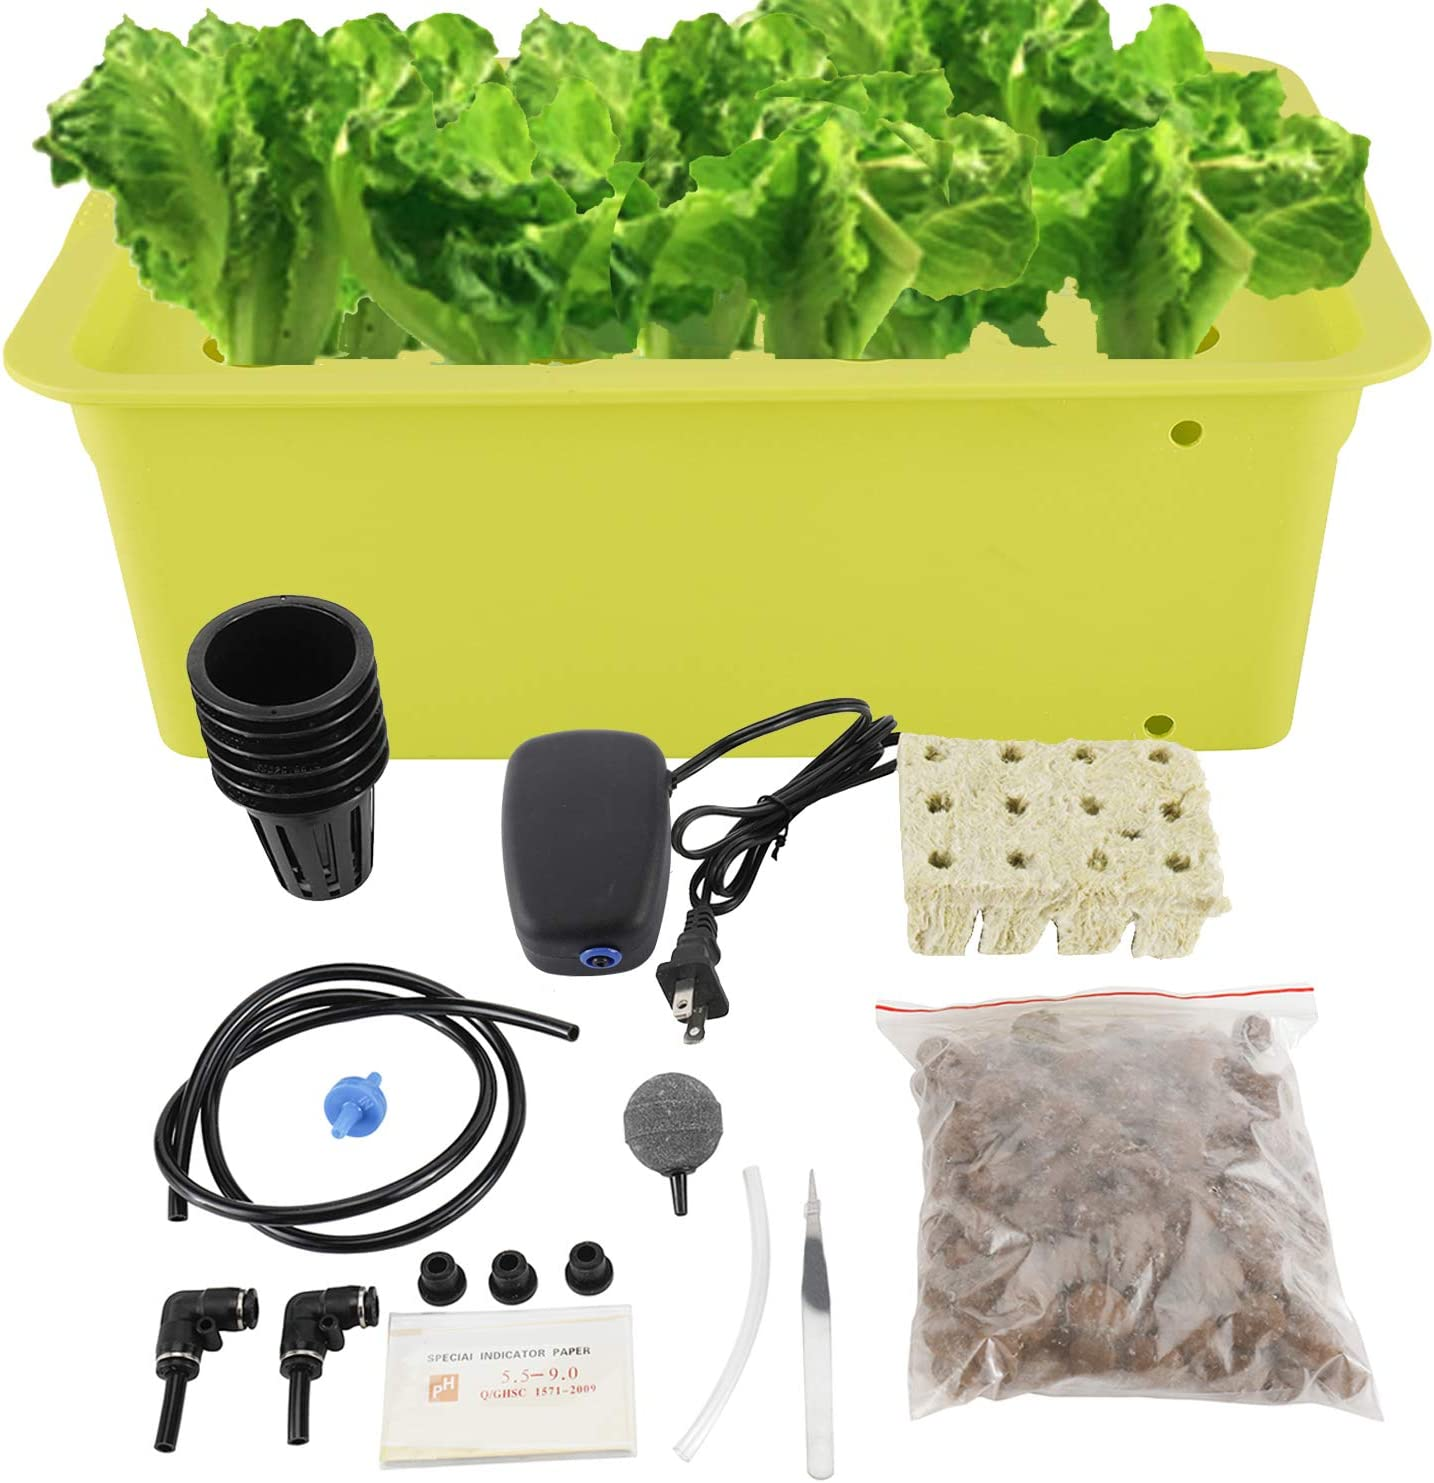 HighFree Hydroponic System Growing Kit for Plants Herb Garden Starter Set 11 Sites DIY Self Watering Indoor Hydroponics Tools with Large Bubble Stone Rockwool Bucket Air Pump